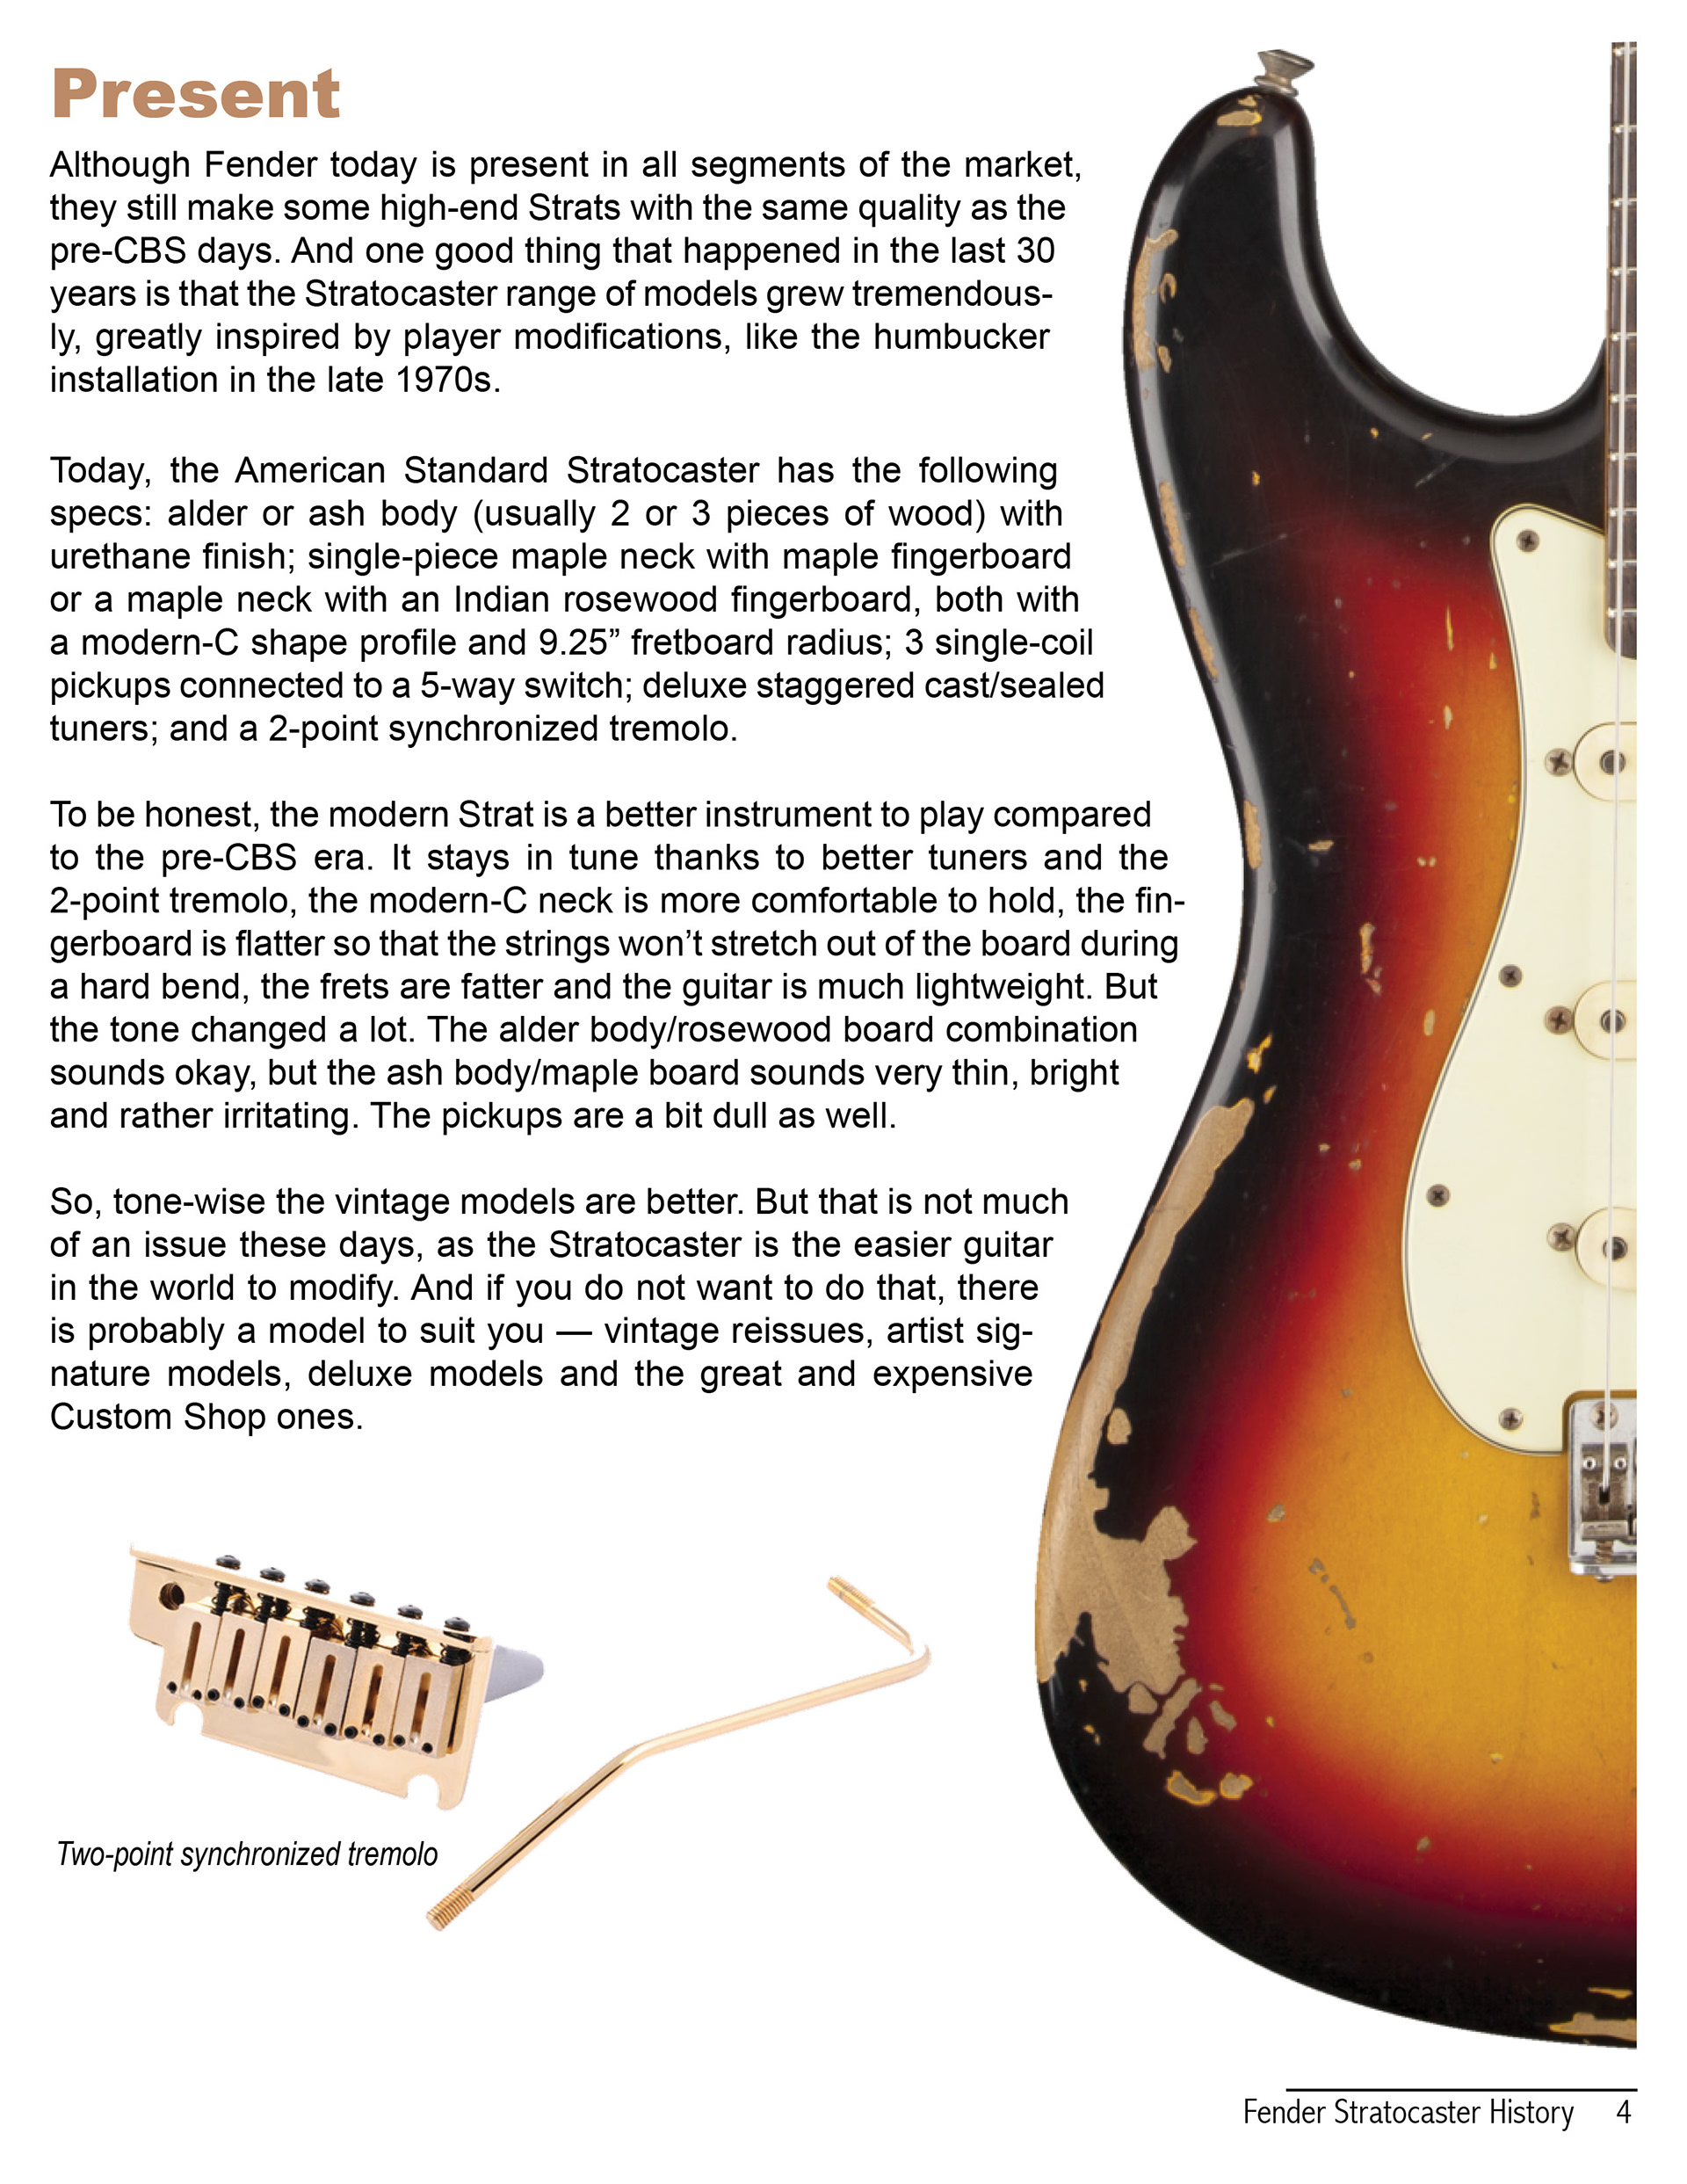 Zac Hobbs The Fender Stratocaster 3 Way Switch History Layout Existing Article In Indesign